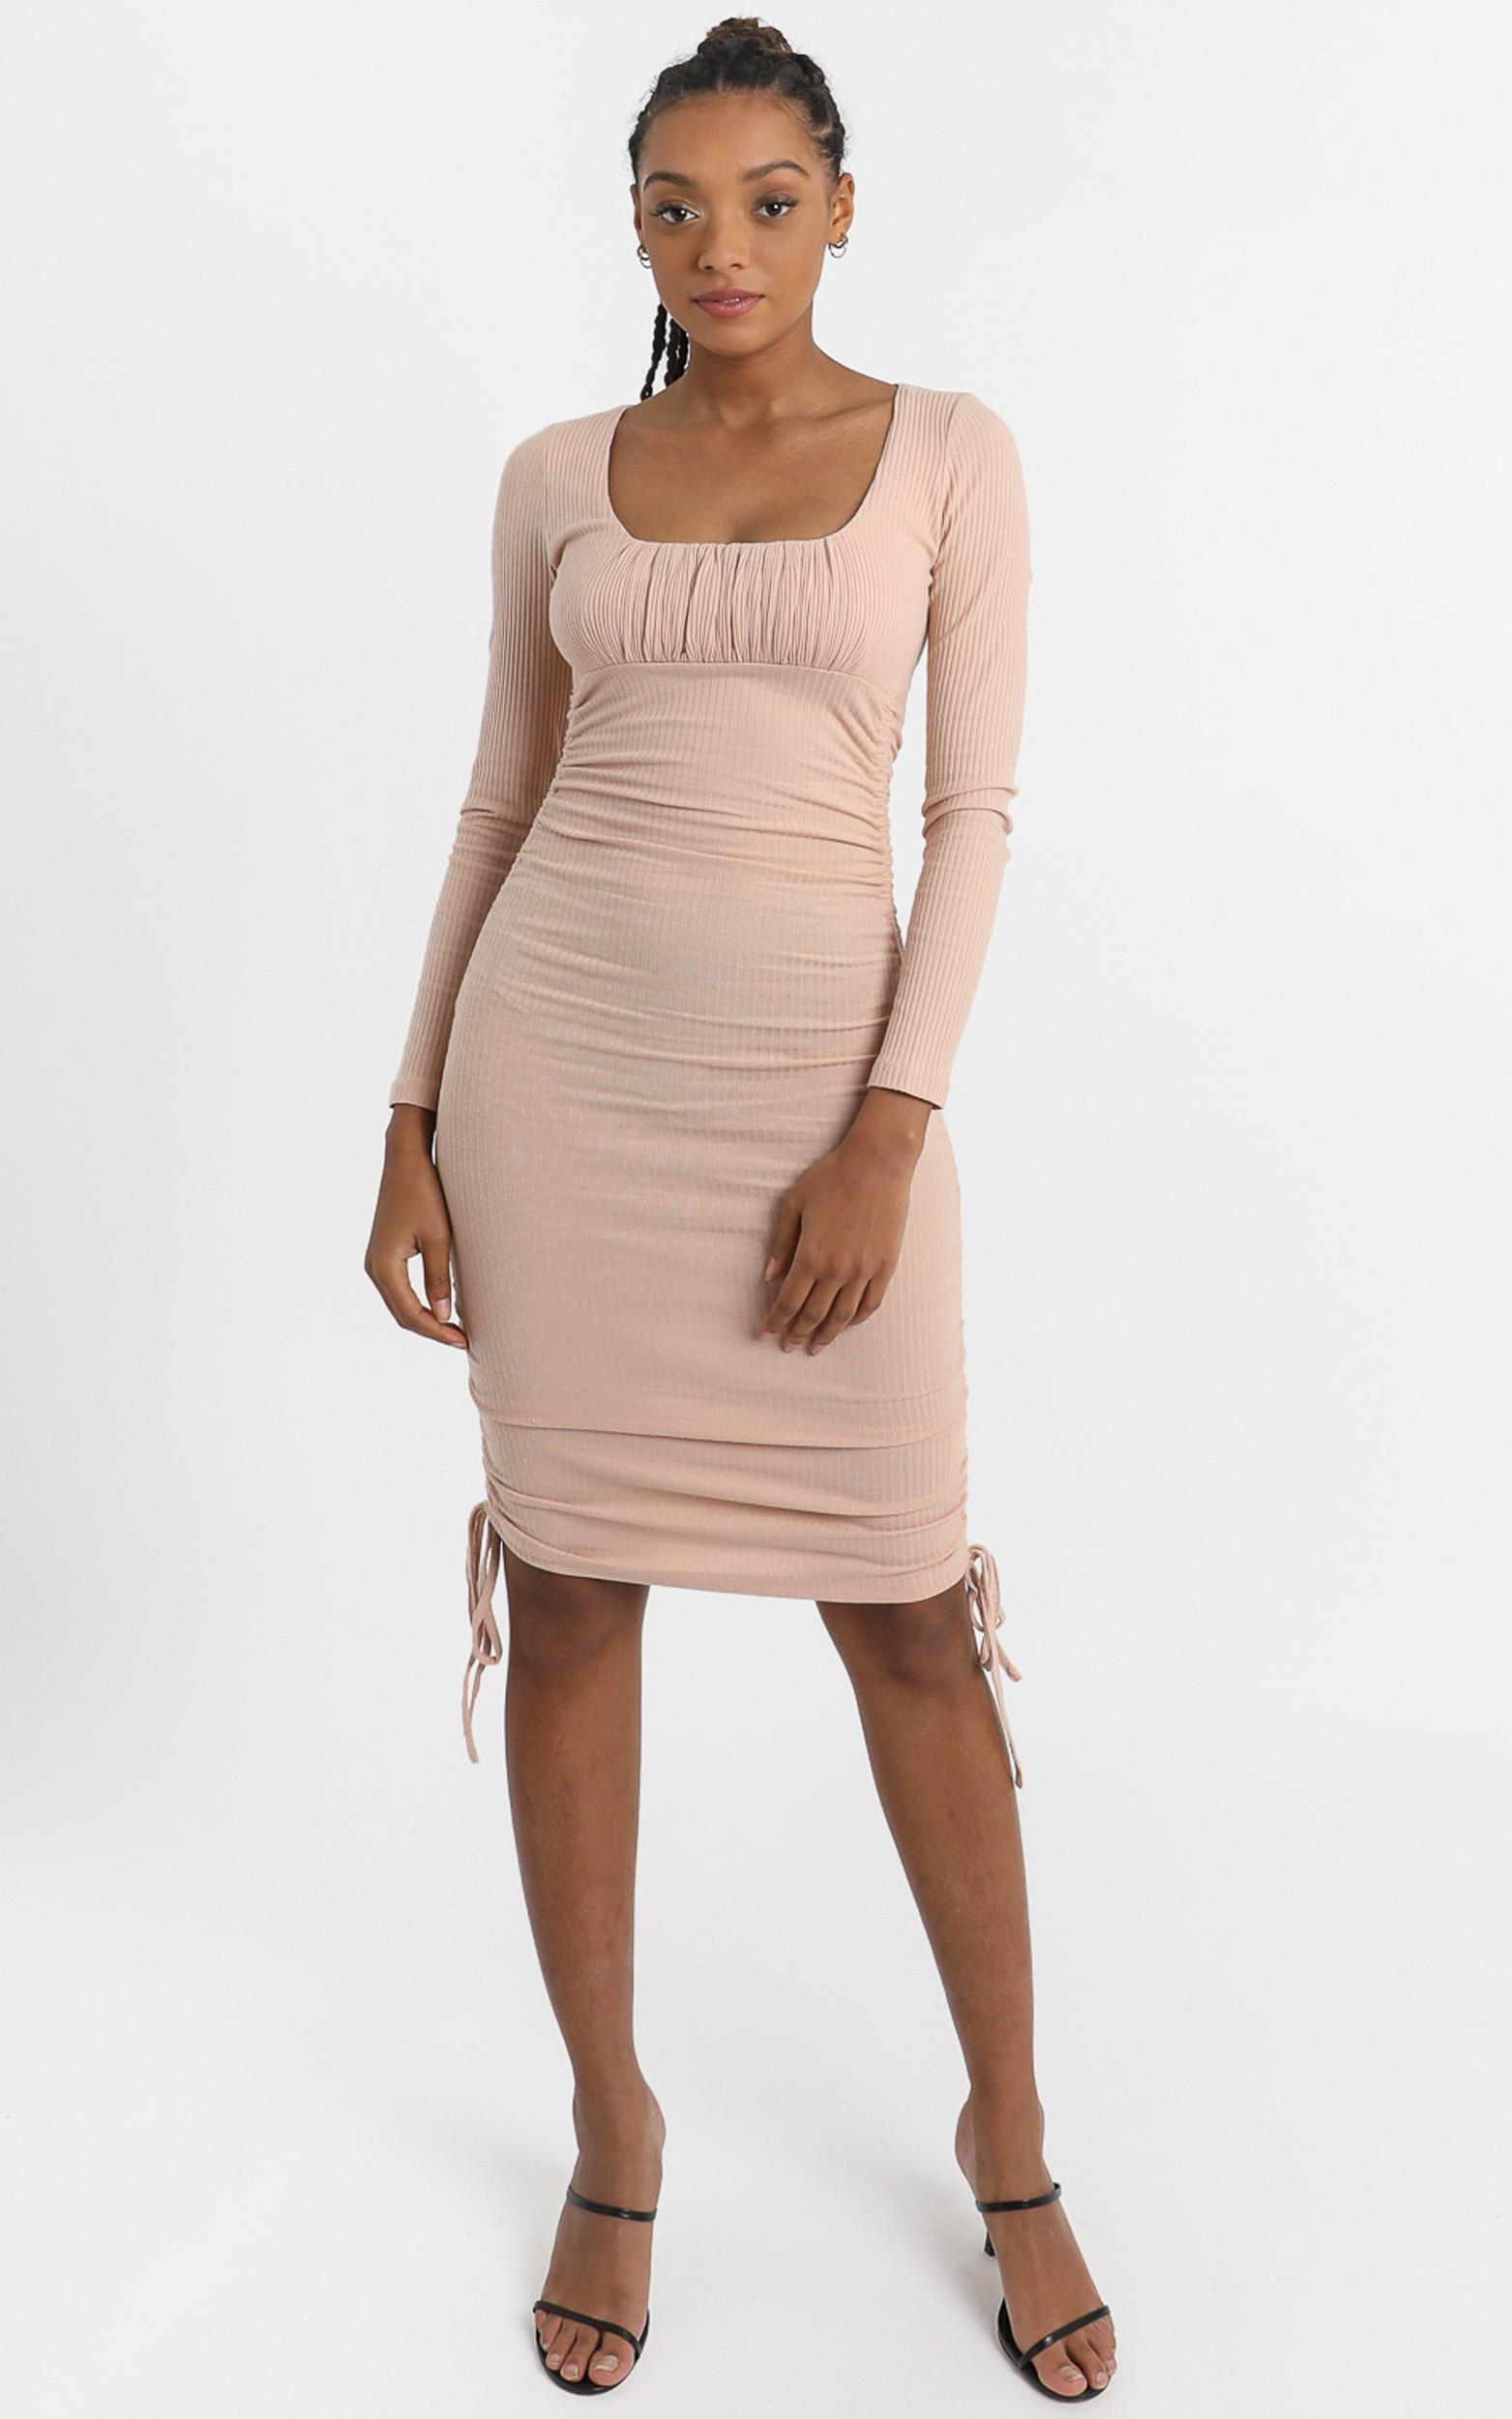 Farris Dress in Blush - 6 (XS), Blush, hi-res image number null